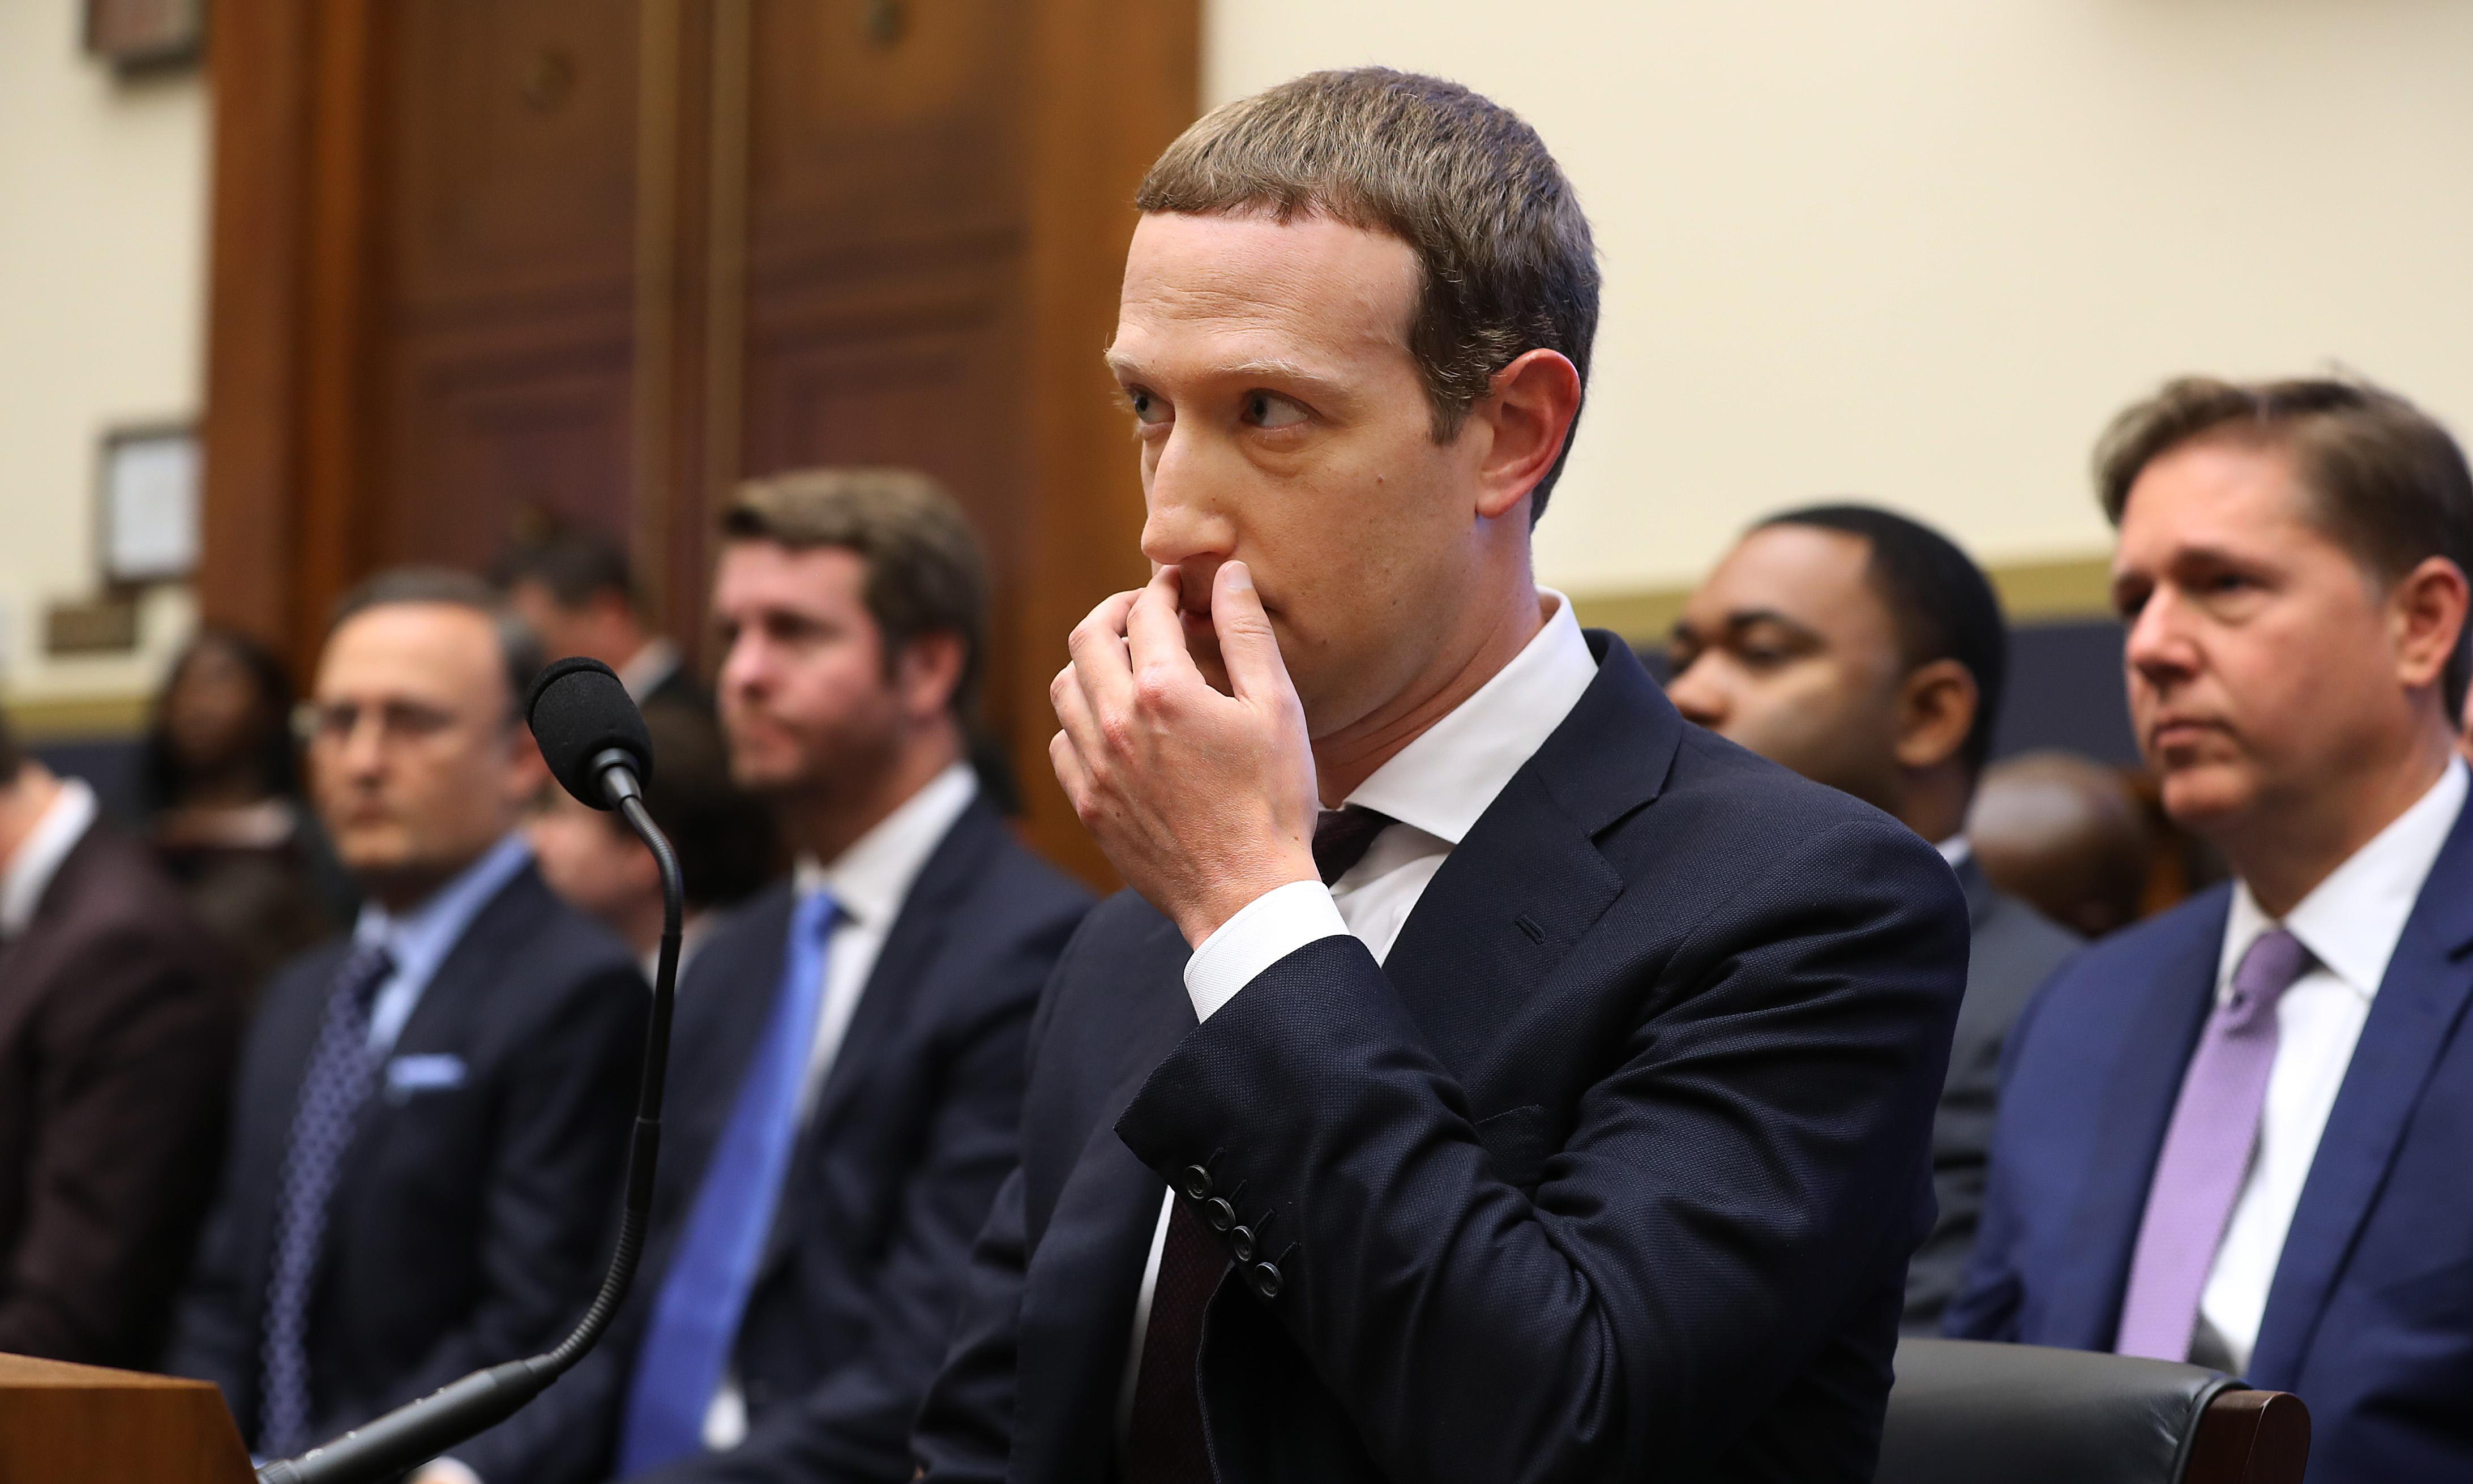 'You're trying to help drug dealers': Zuckerberg faces angry lawmakers at Libra hearing